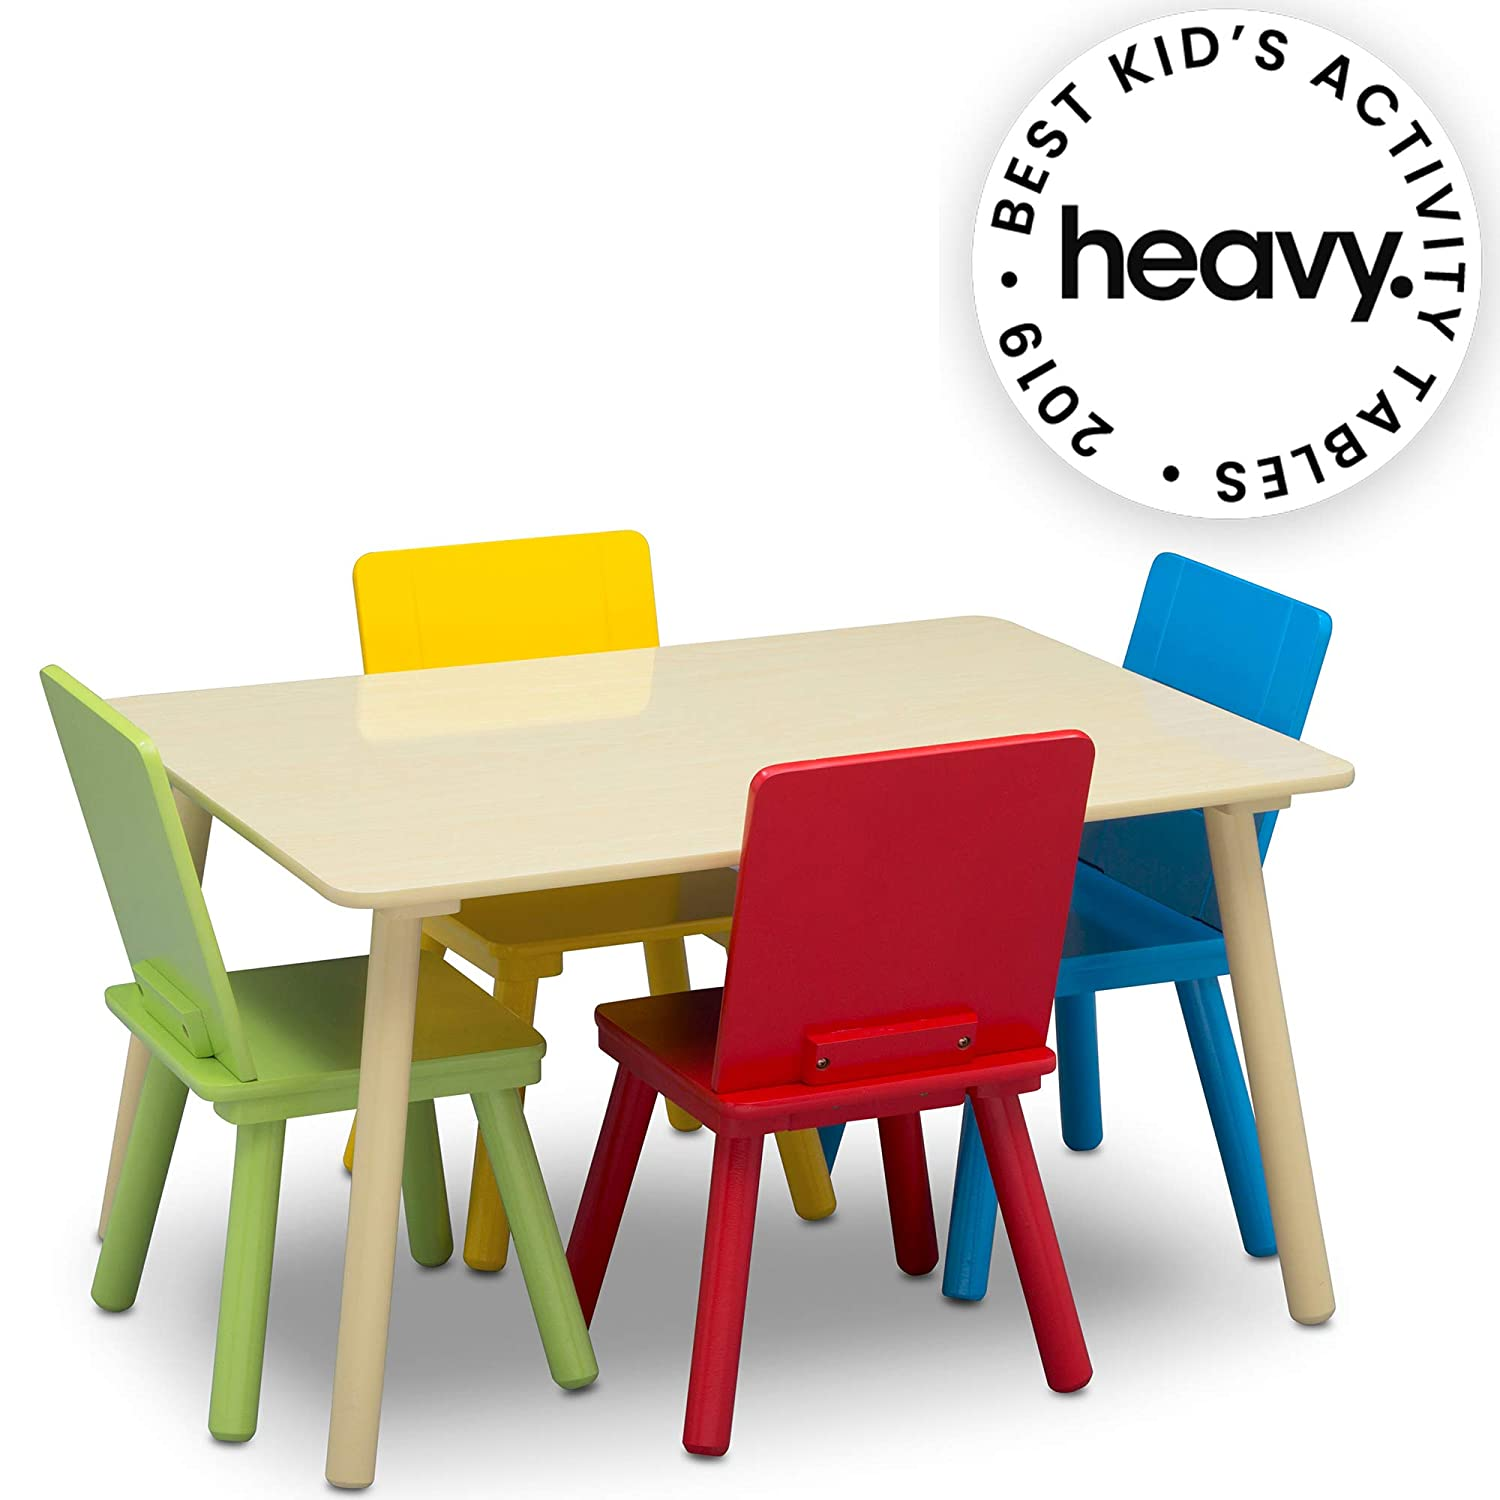 Awe Inspiring Delta Children Kids Chair Set And Table 4 Chairs Included Natural Primary Dailytribune Chair Design For Home Dailytribuneorg